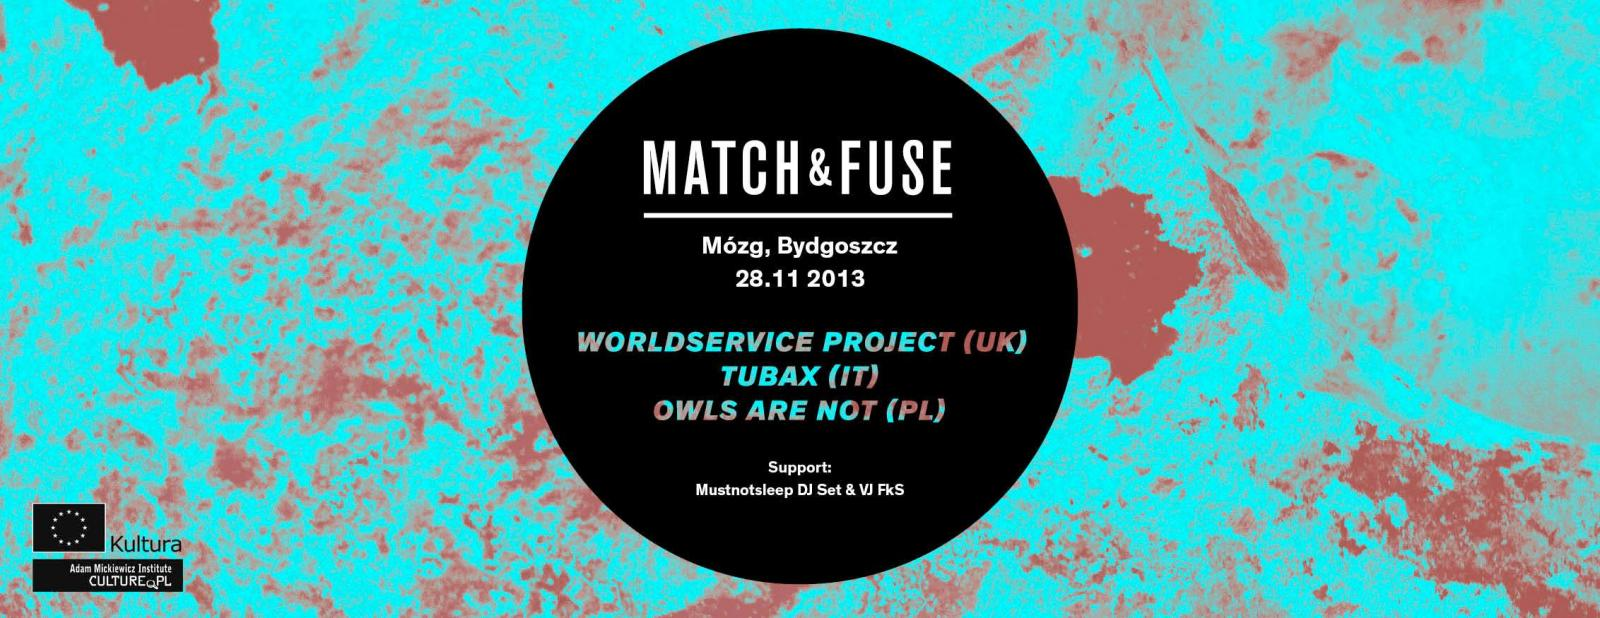 MATCH&FUSE FESTIVAL 2013: WorldService Project (UK), Tubax (IT), Owls Are Not (PL)